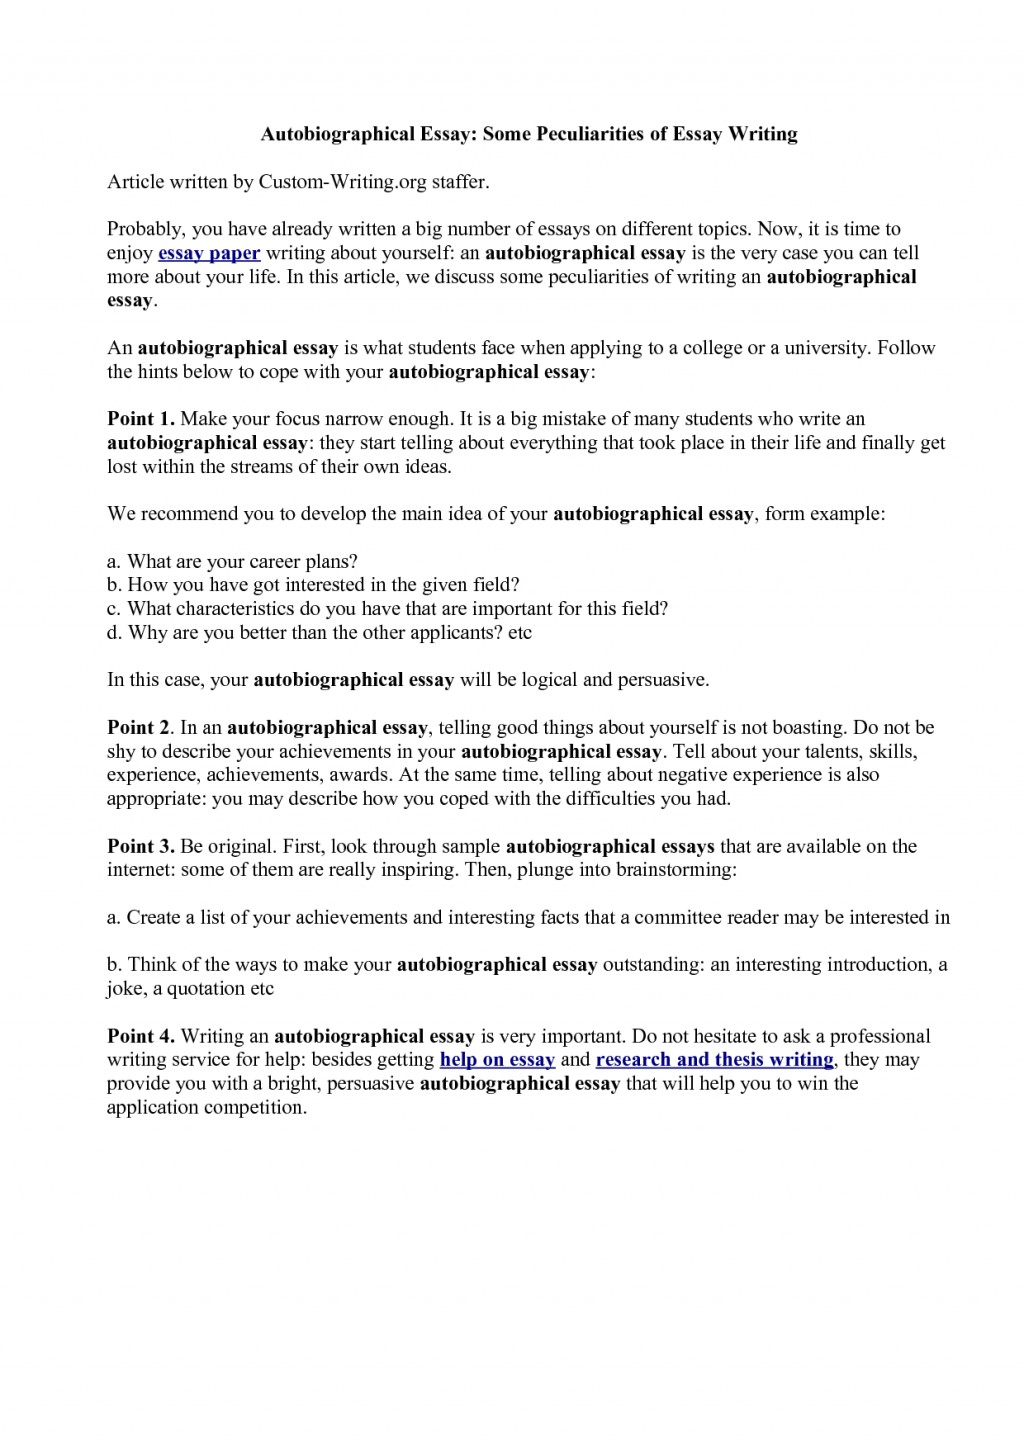 027 Essay Example Autobiography Of Telling About Yourself Luxury Unique Tagalog Bio For Students Large